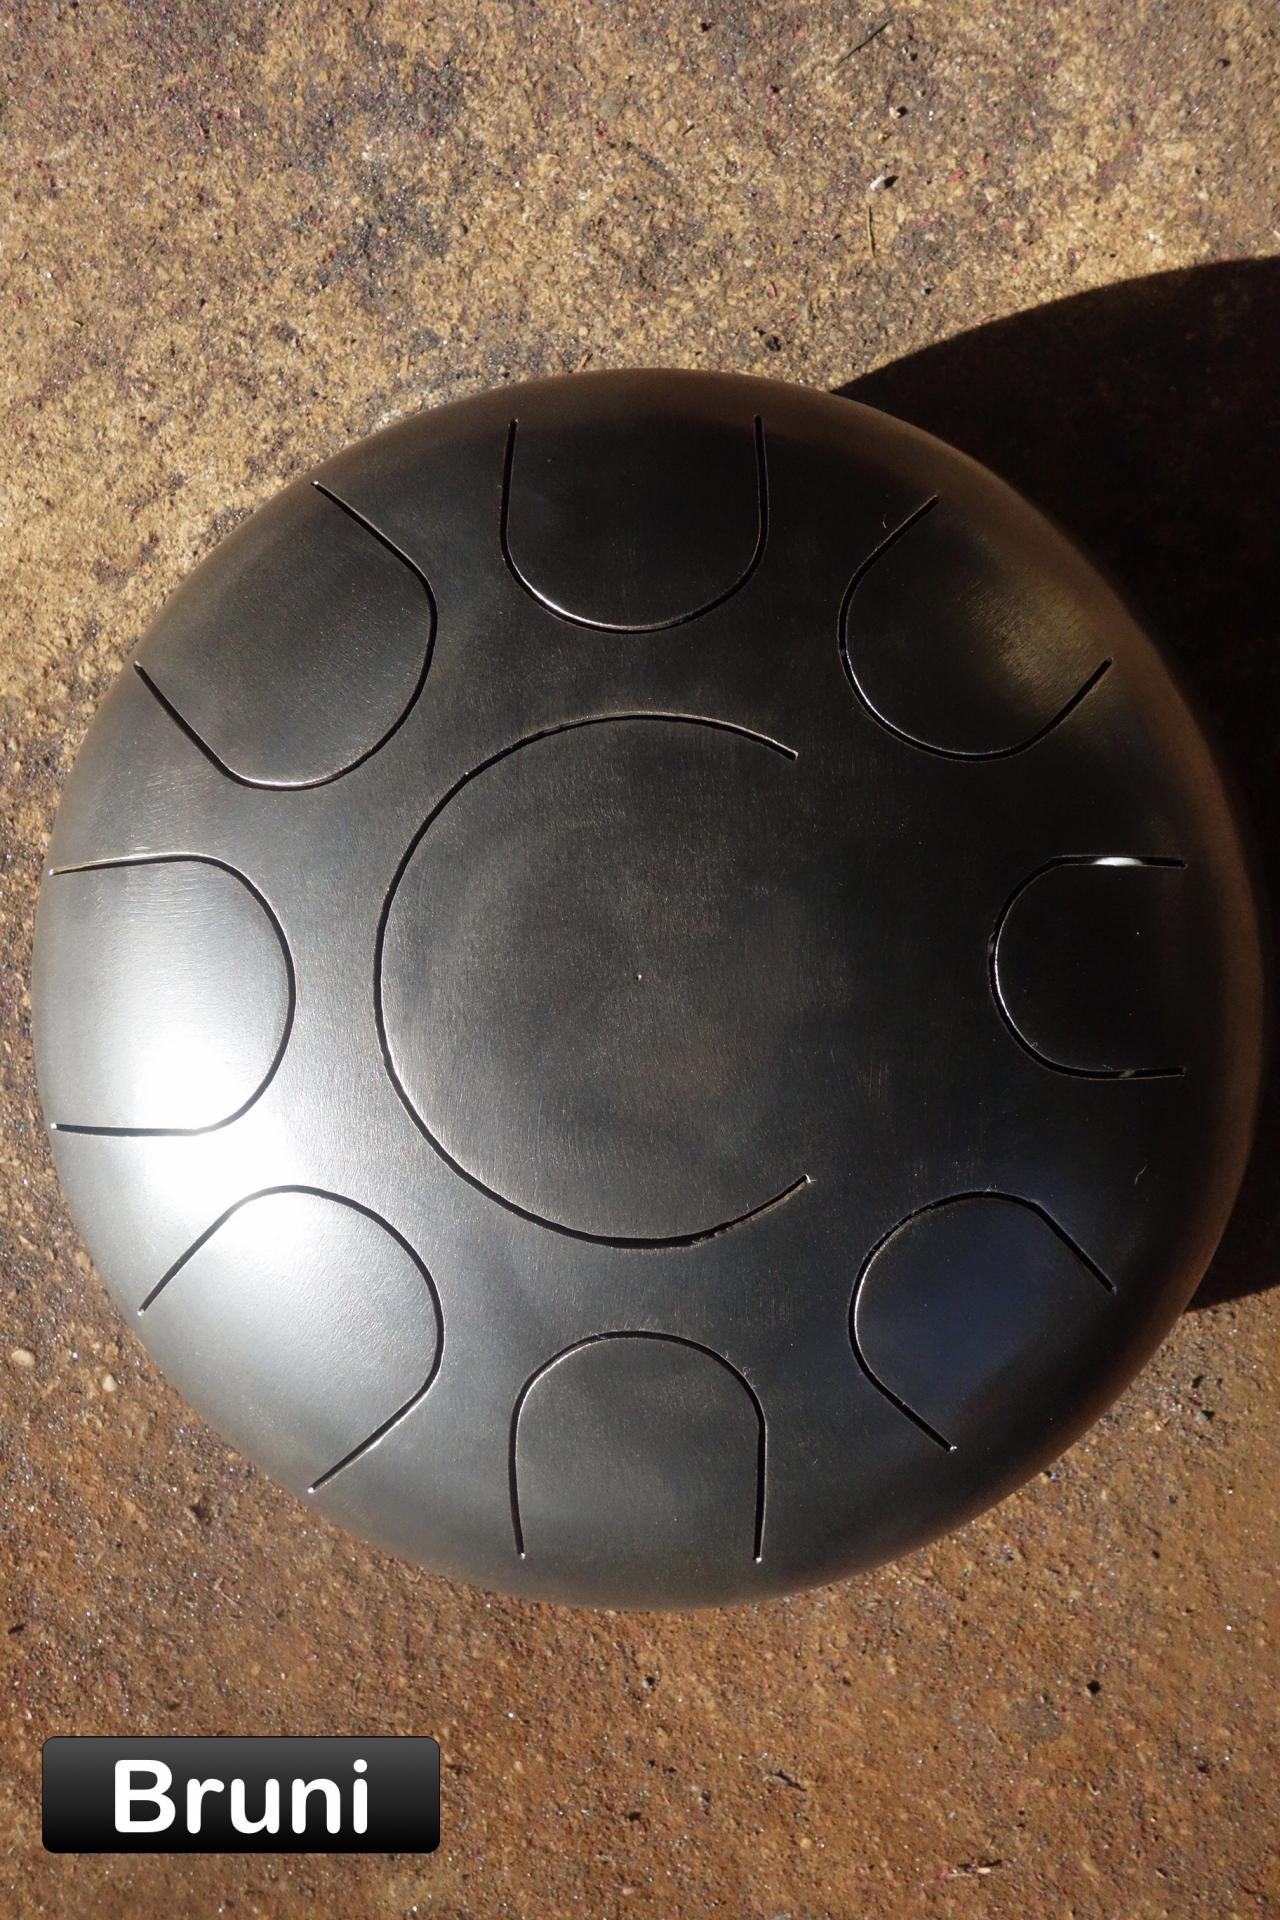 Steel tongue drum 9 notes bruni - Sound Circle